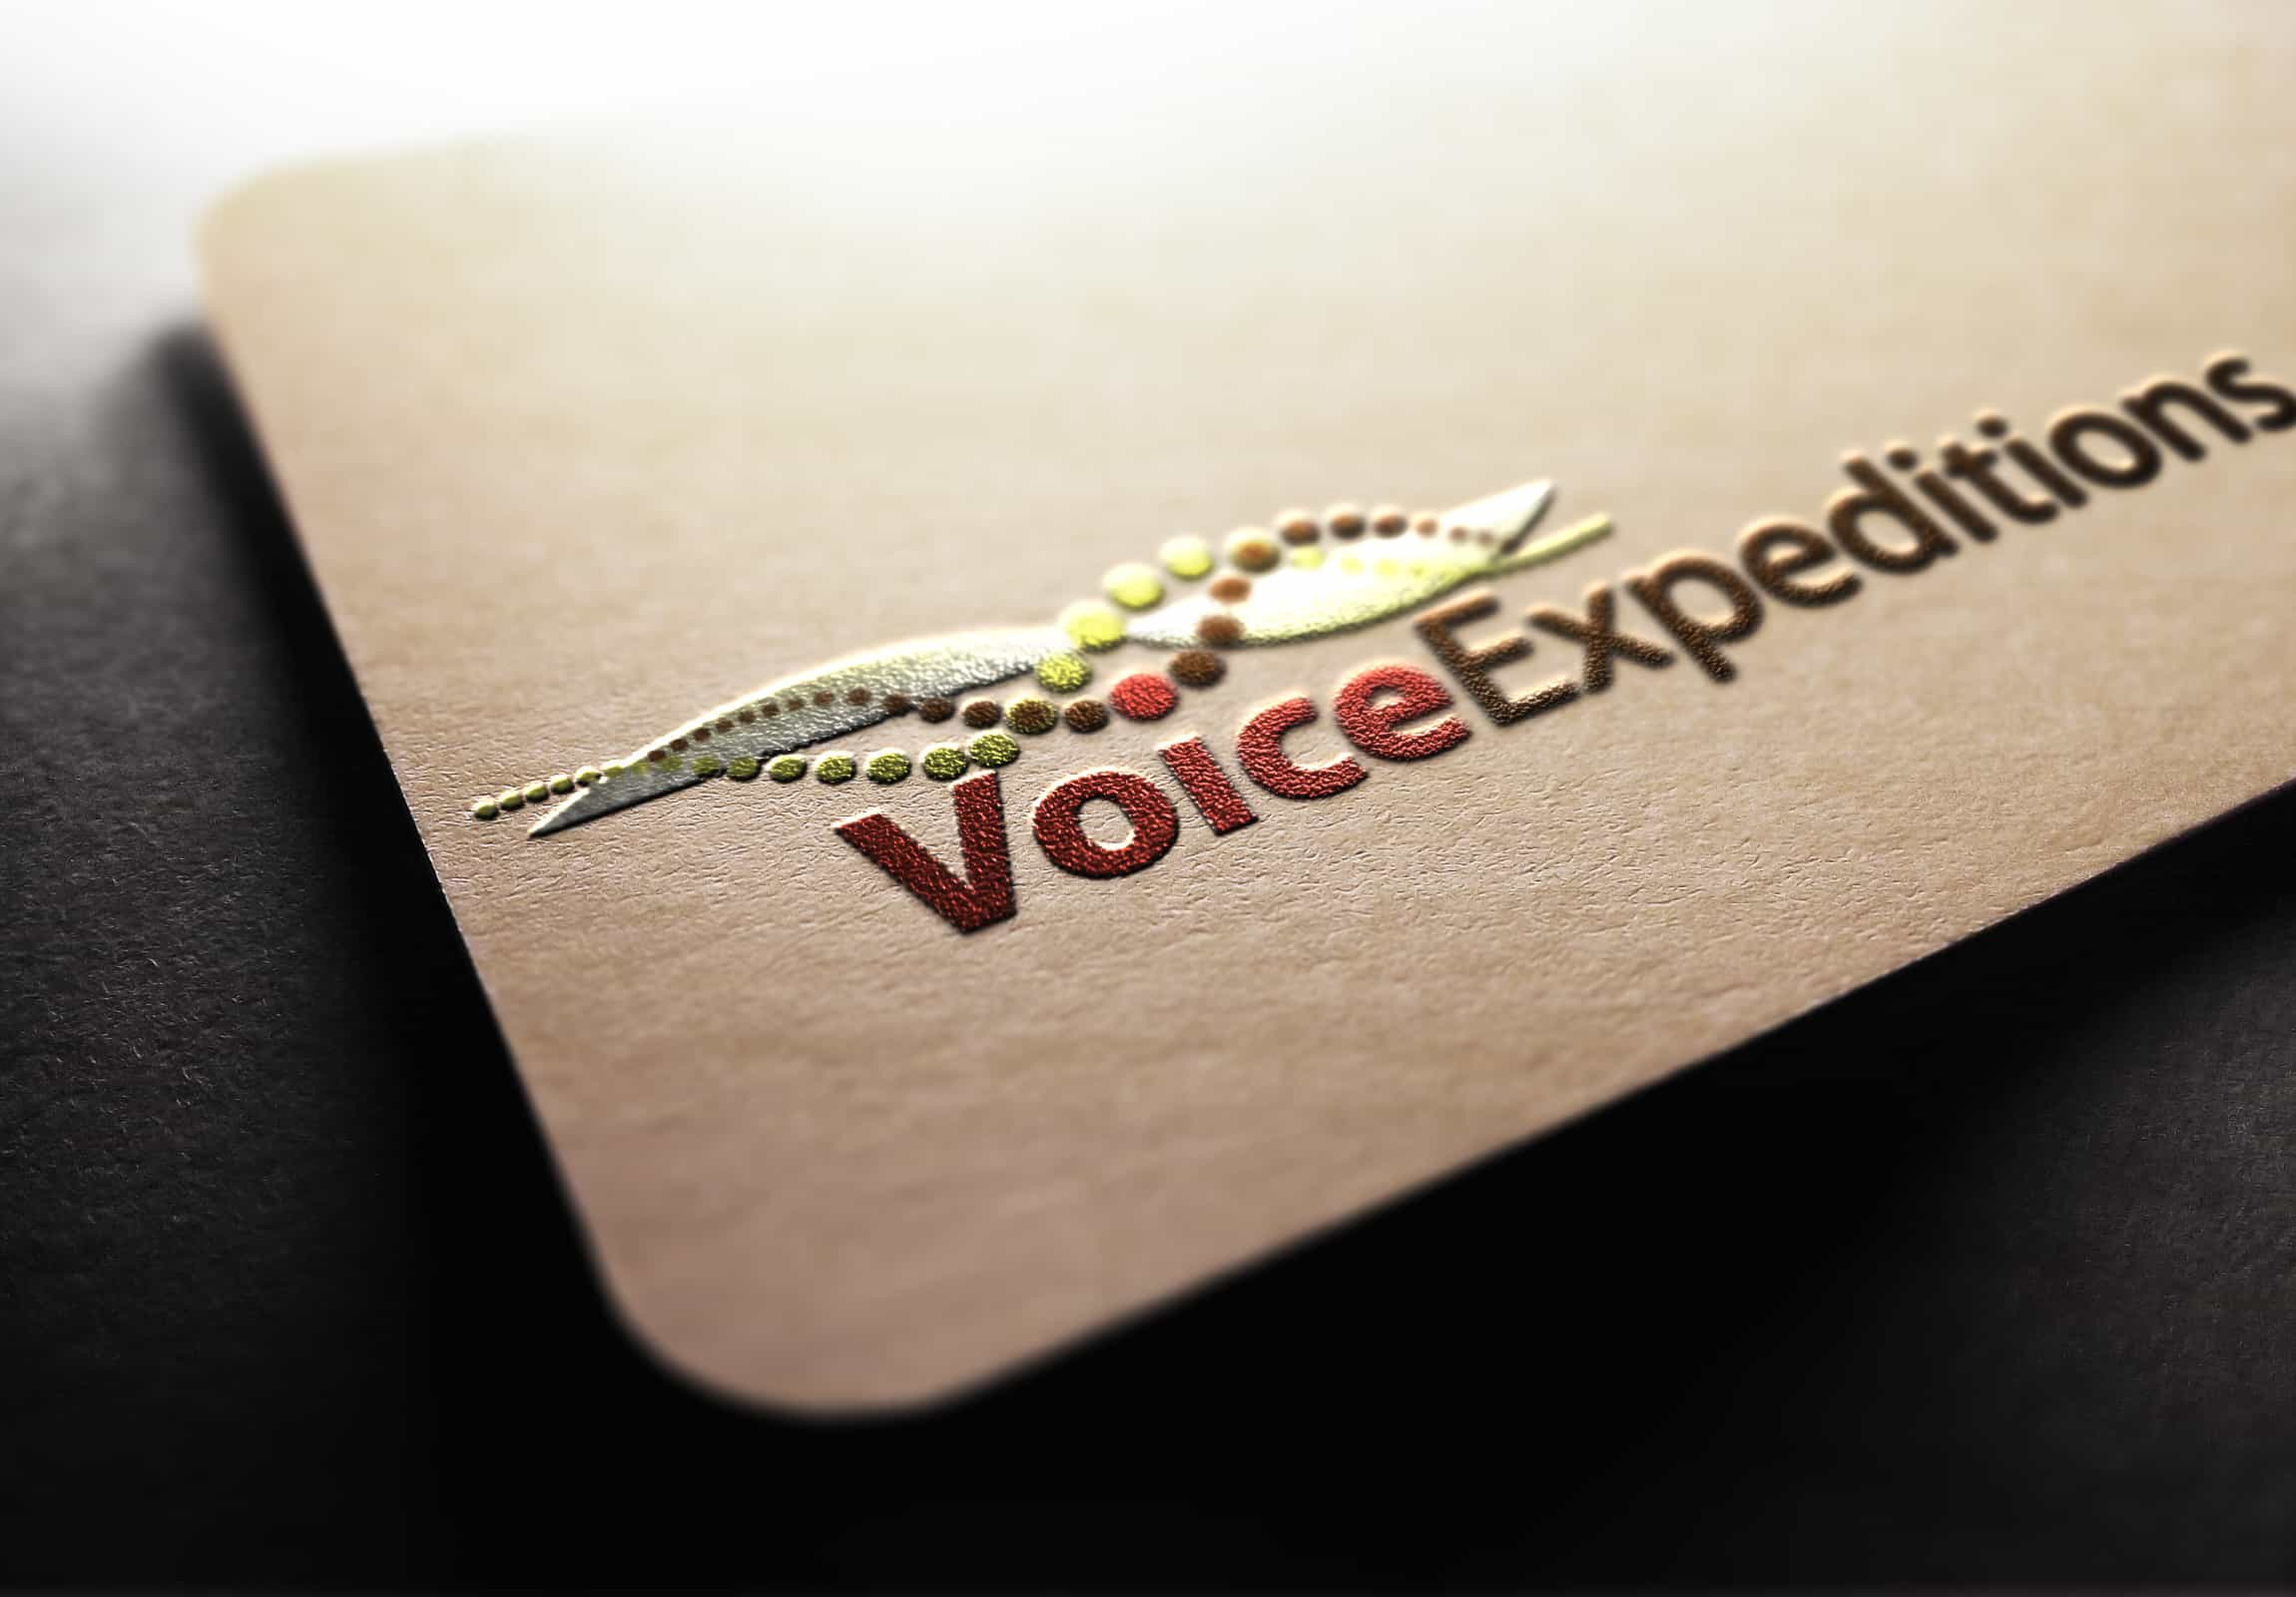 Voice Expeditions - Branding & Marketing